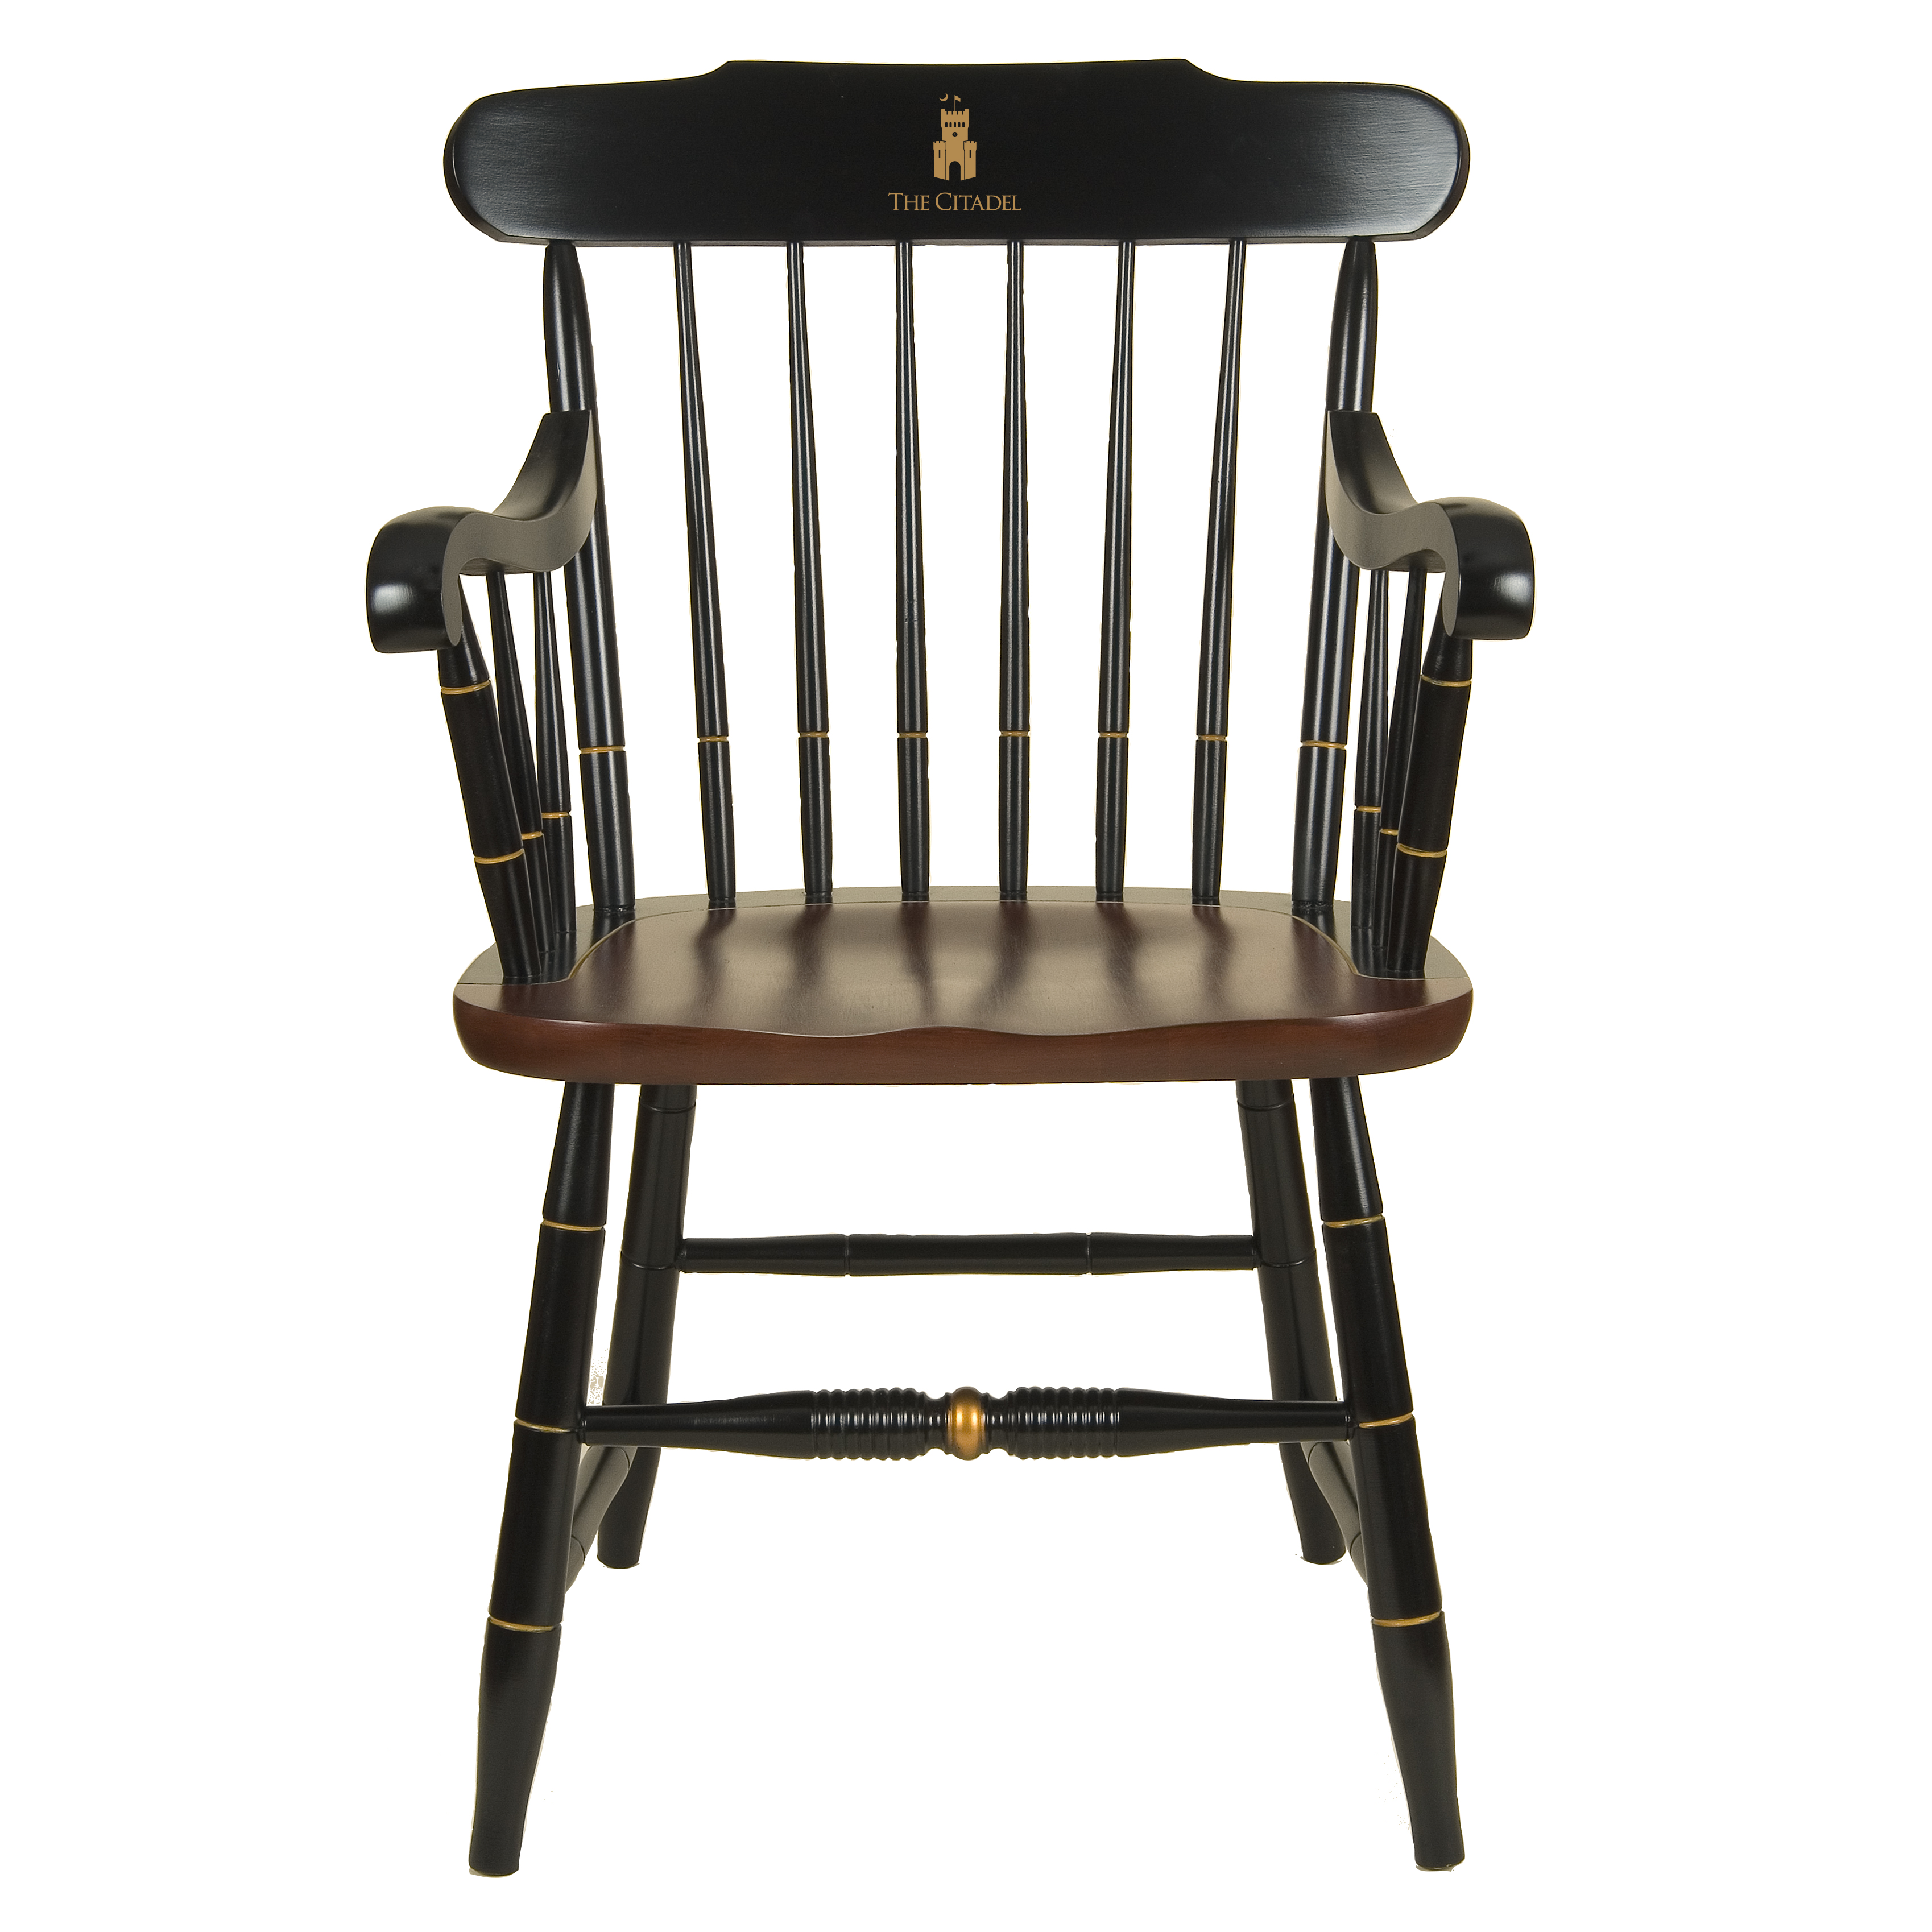 Citadel Captain's Chair by Hitchcock